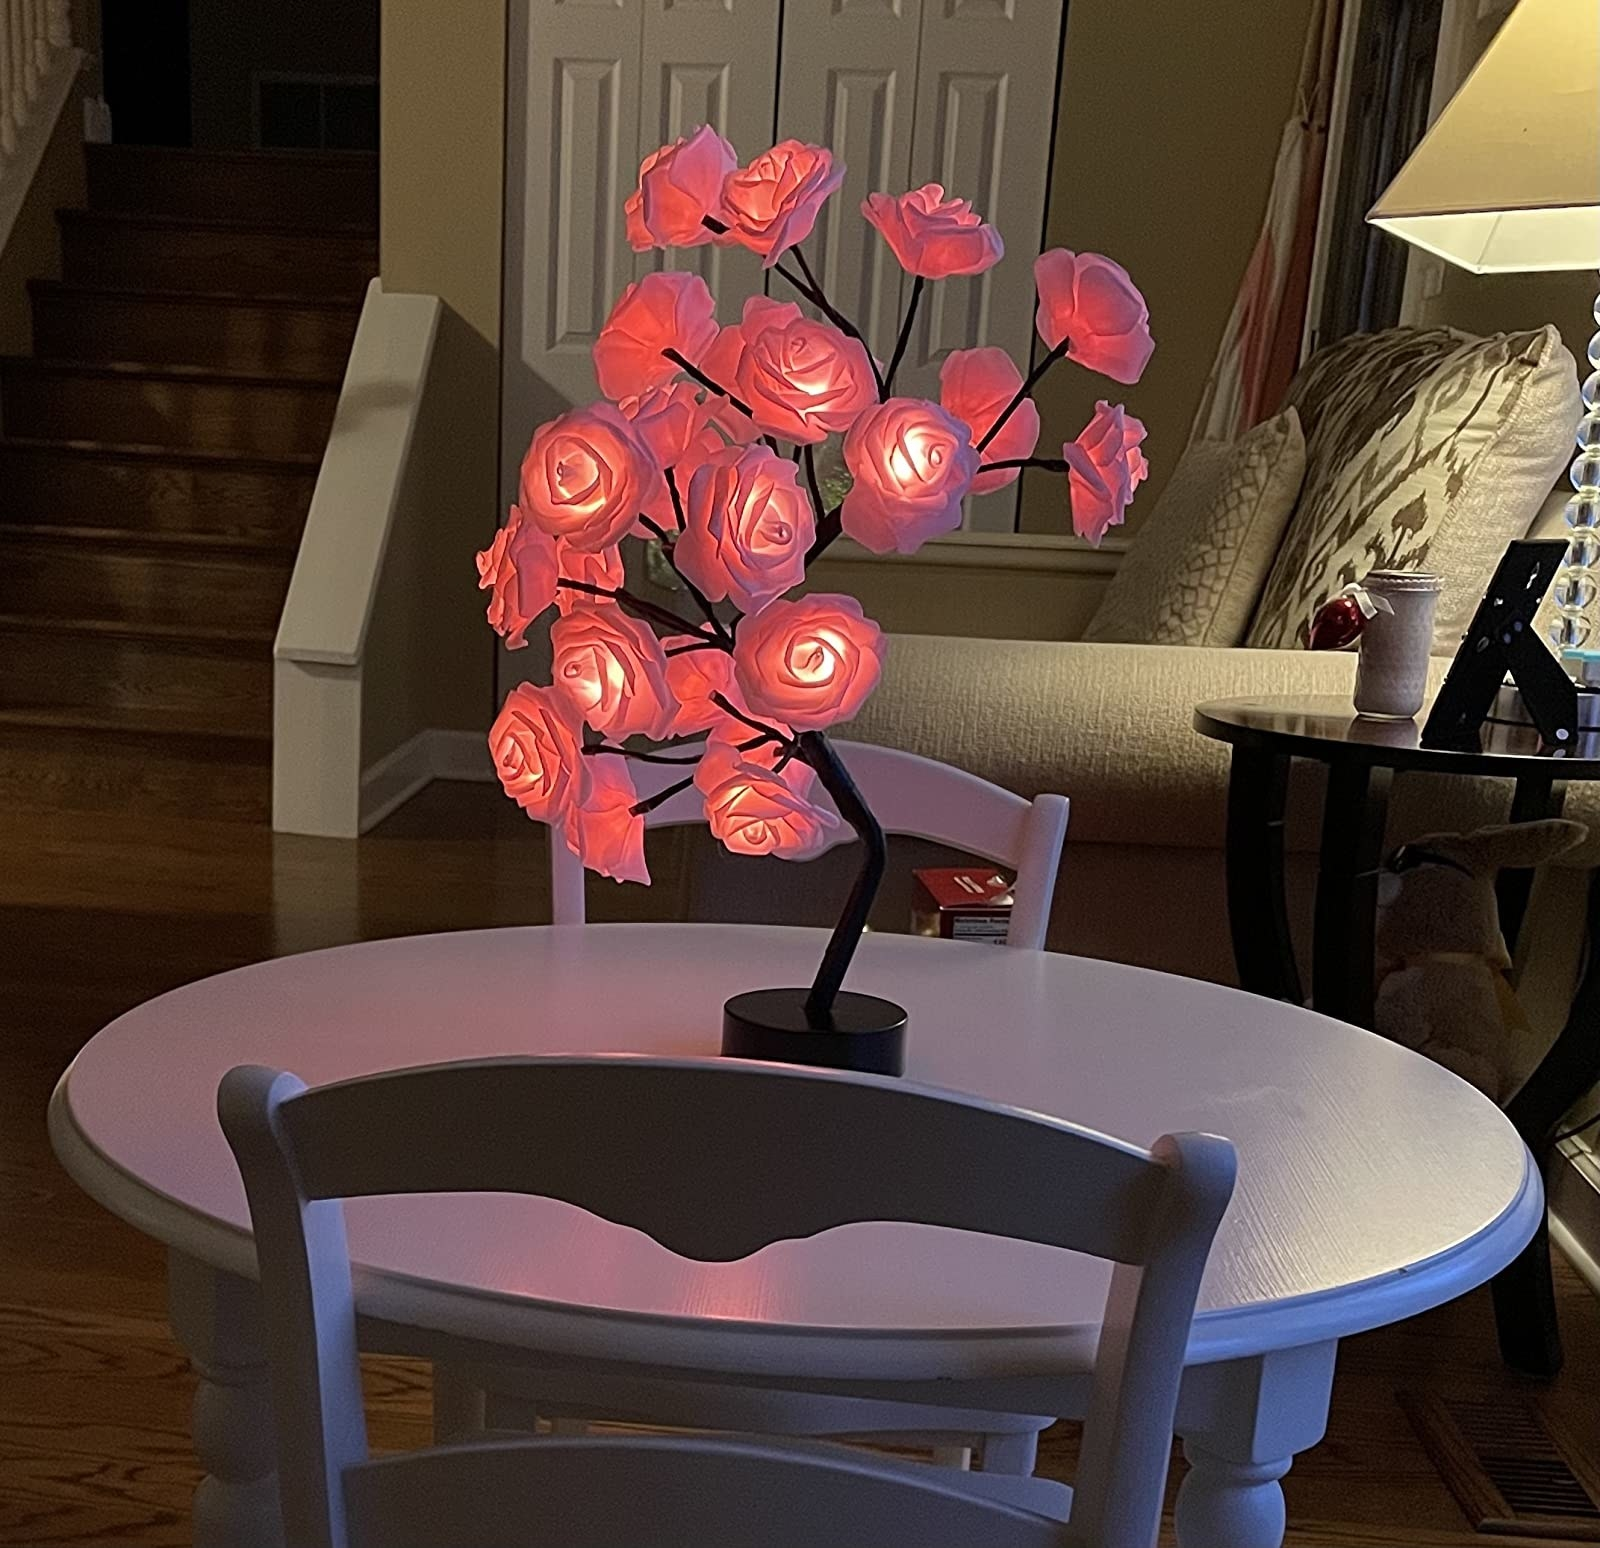 reviewer image of the rose tree lamp turned on atop a round white table